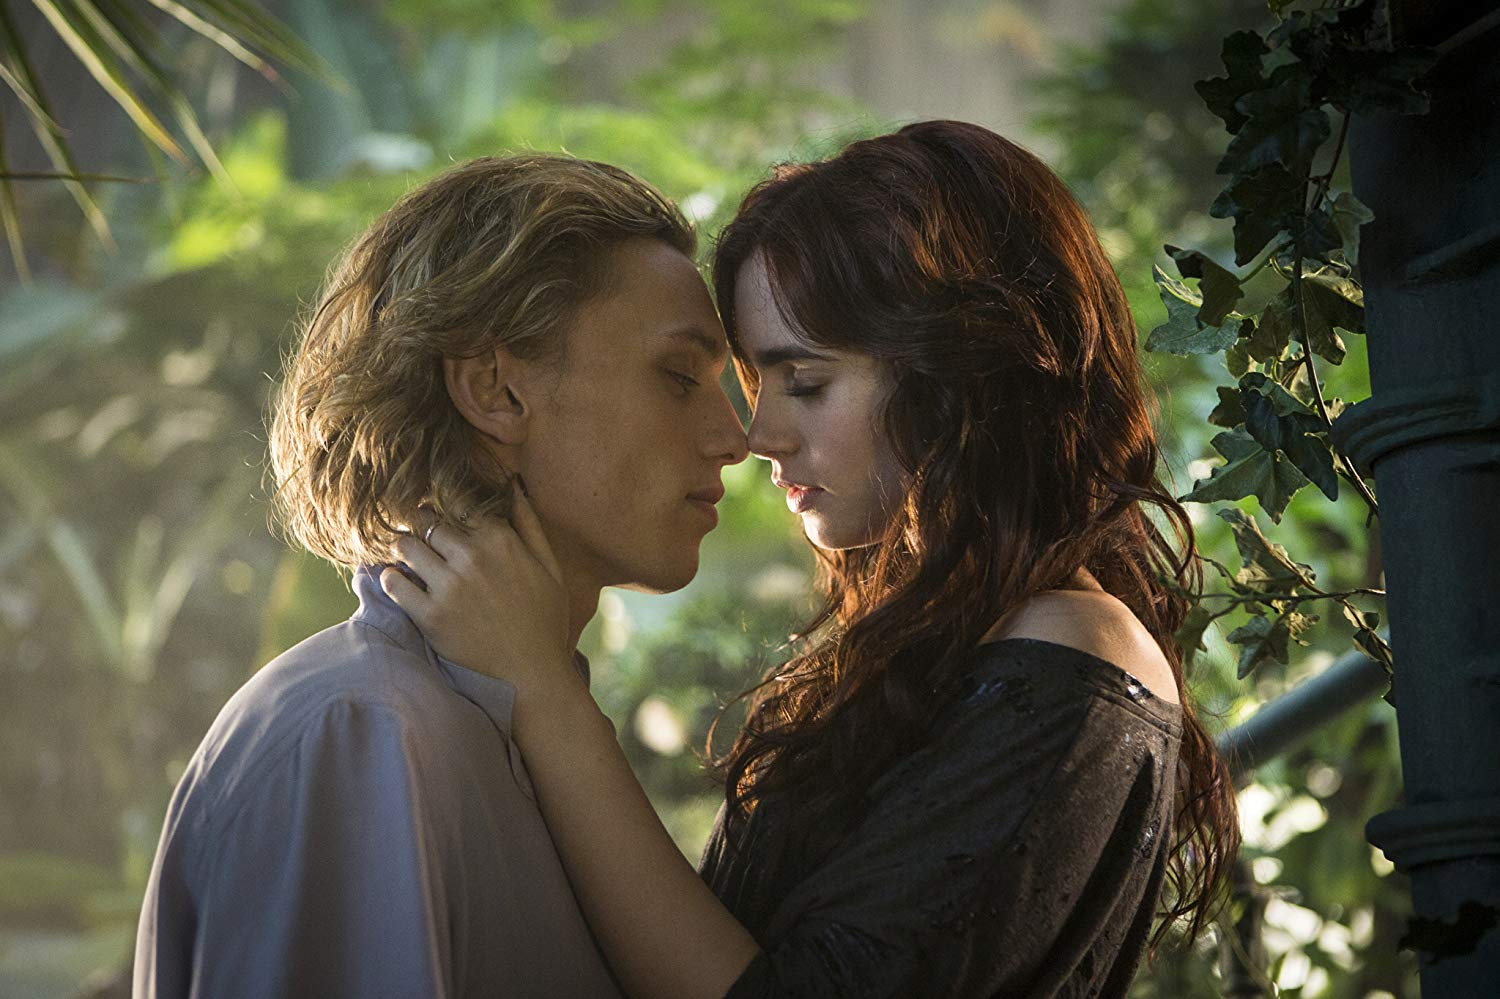 Jamie Bower, Lily Collins in The Mortal Instruments: City of Bones (2013)